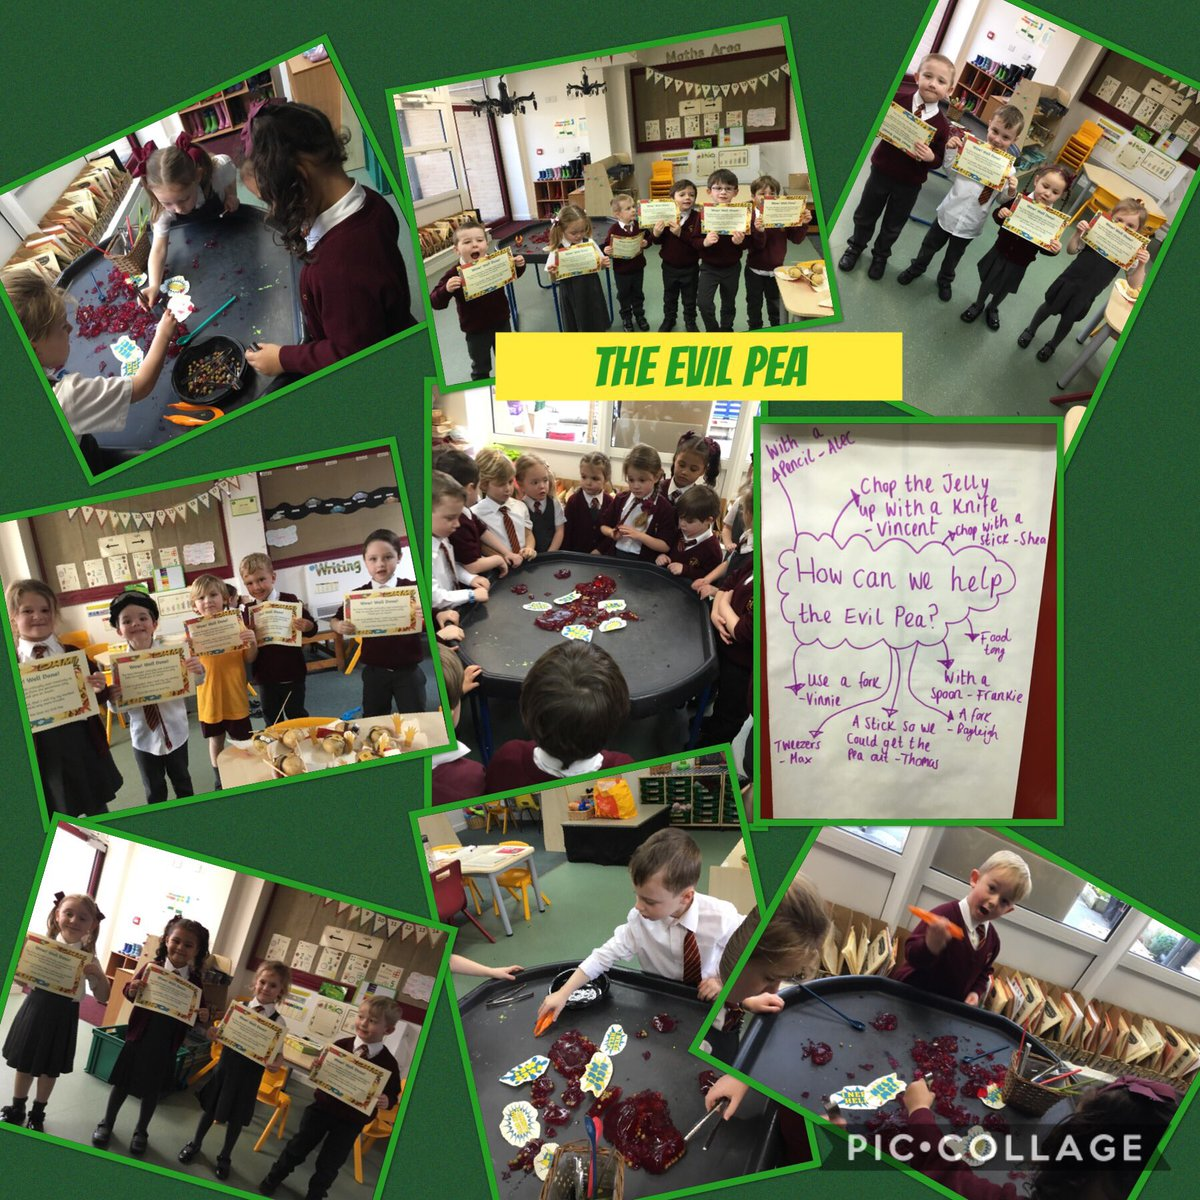 We had to think critically of ways we could rescue the Evil Pea without touching the poisonous jelly. When we successfully rescued the Pea we got a certificate! Using tweezers helps us with our fine motor skills #Supertato #evilpea #finemotor